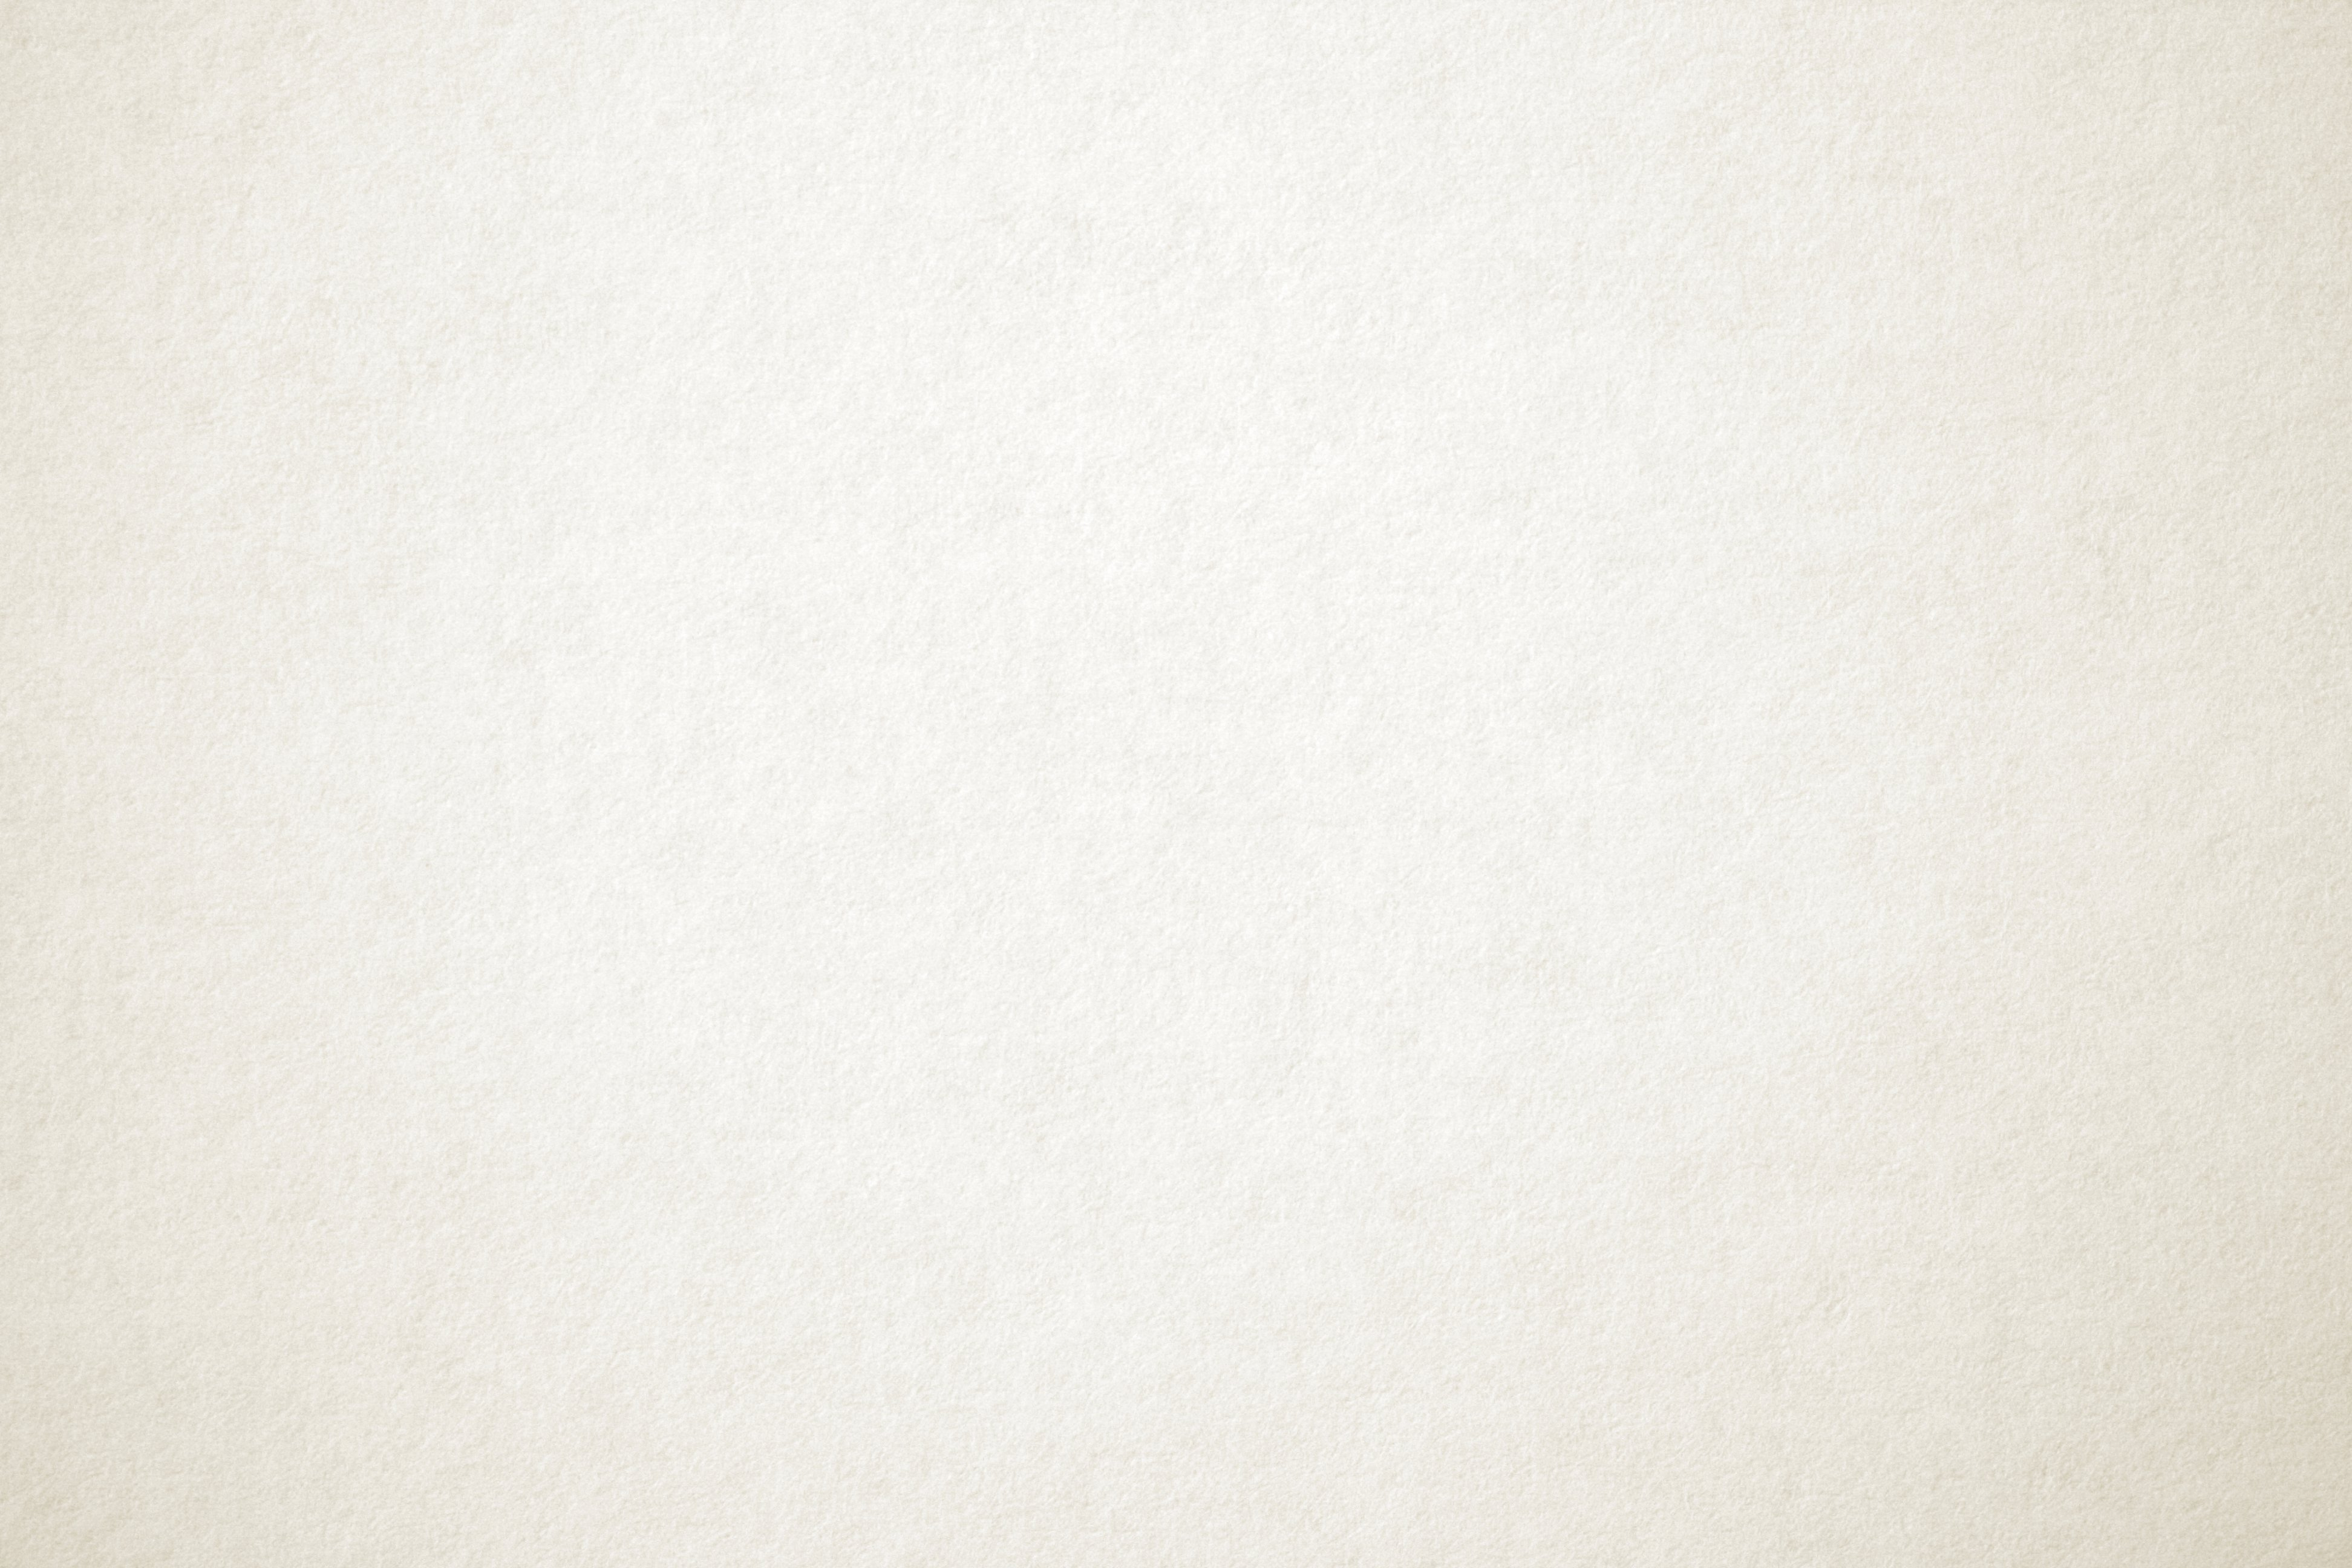 Ivory Off White Paper Texture Picture | Free Photograph | Photos ...